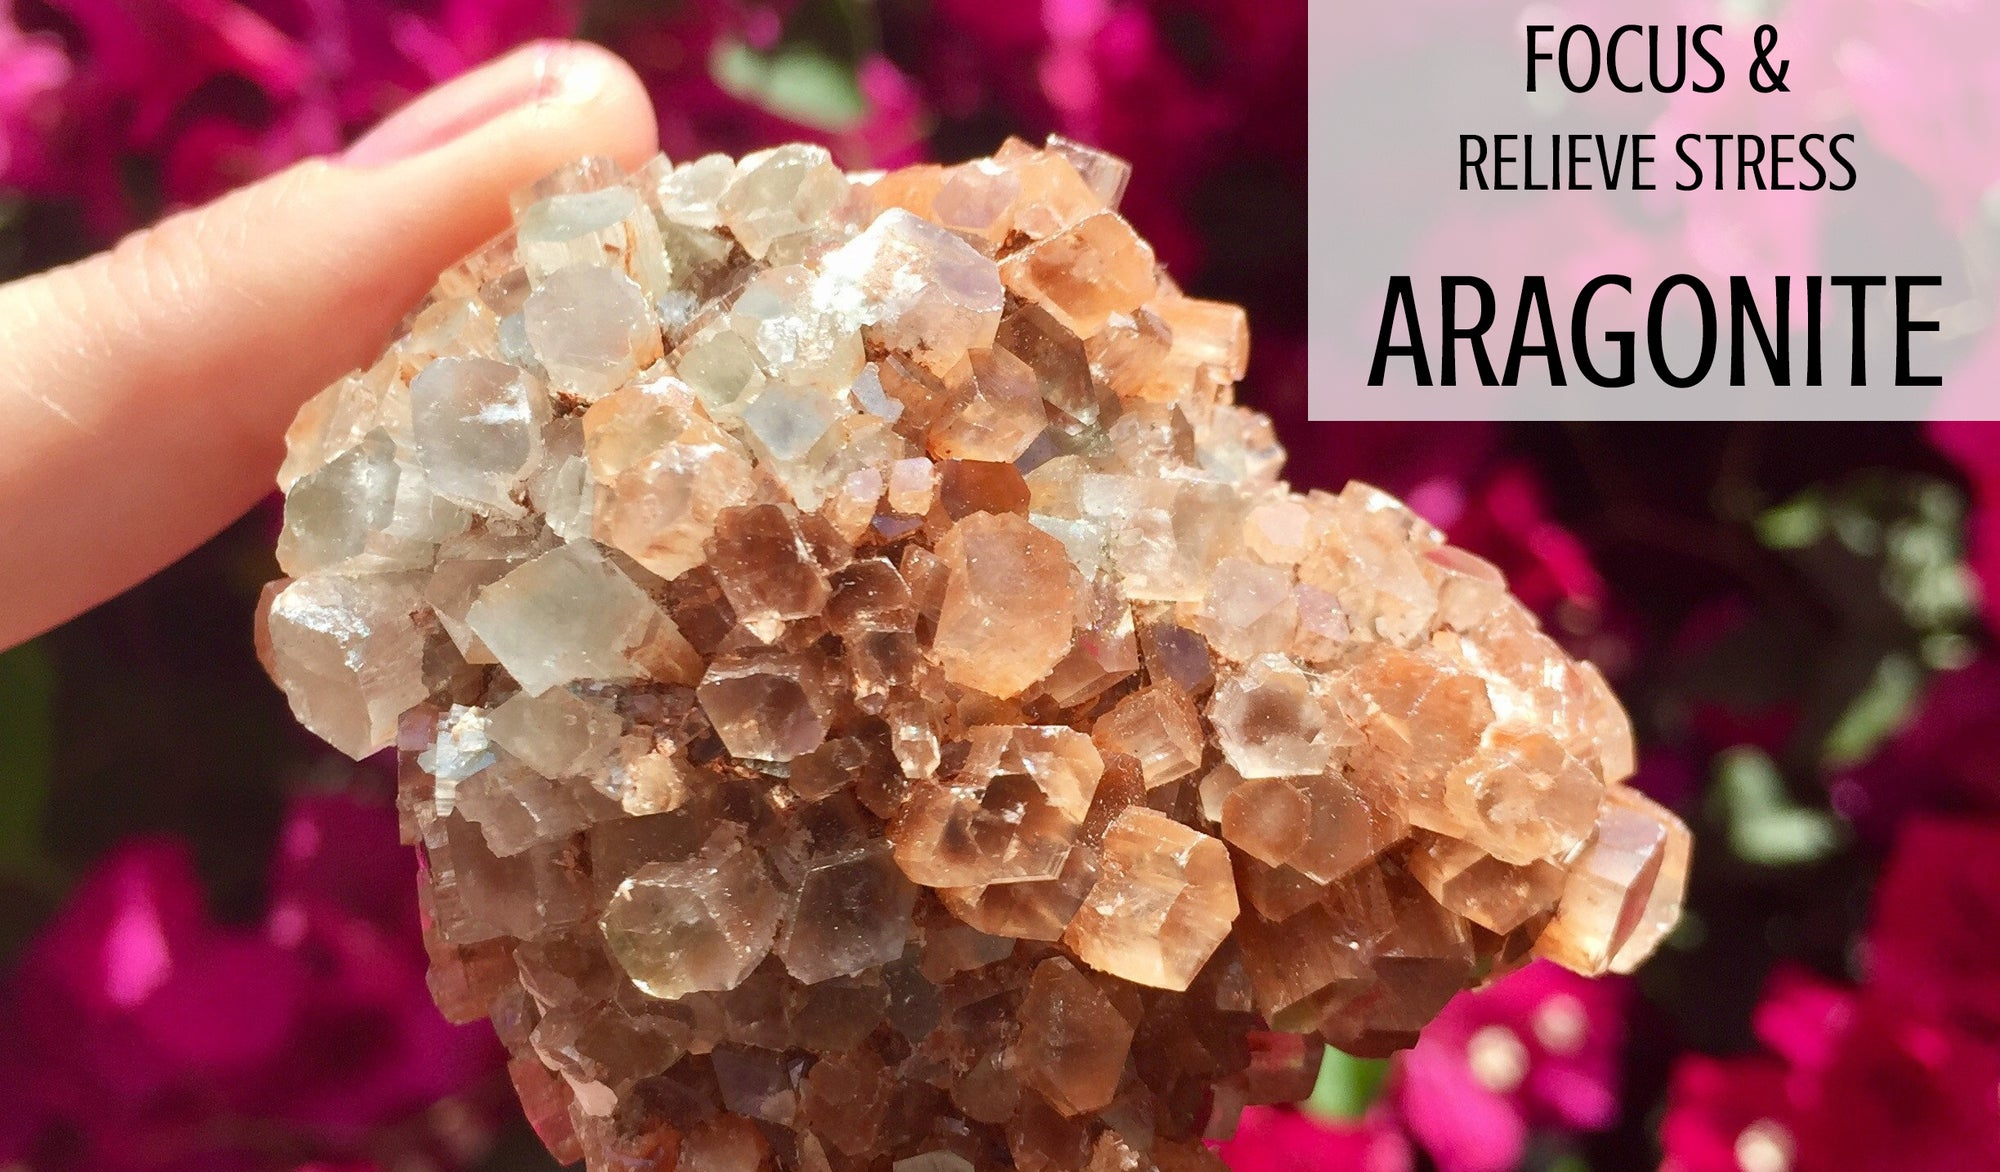 Learn More about Aragonite and its meanings